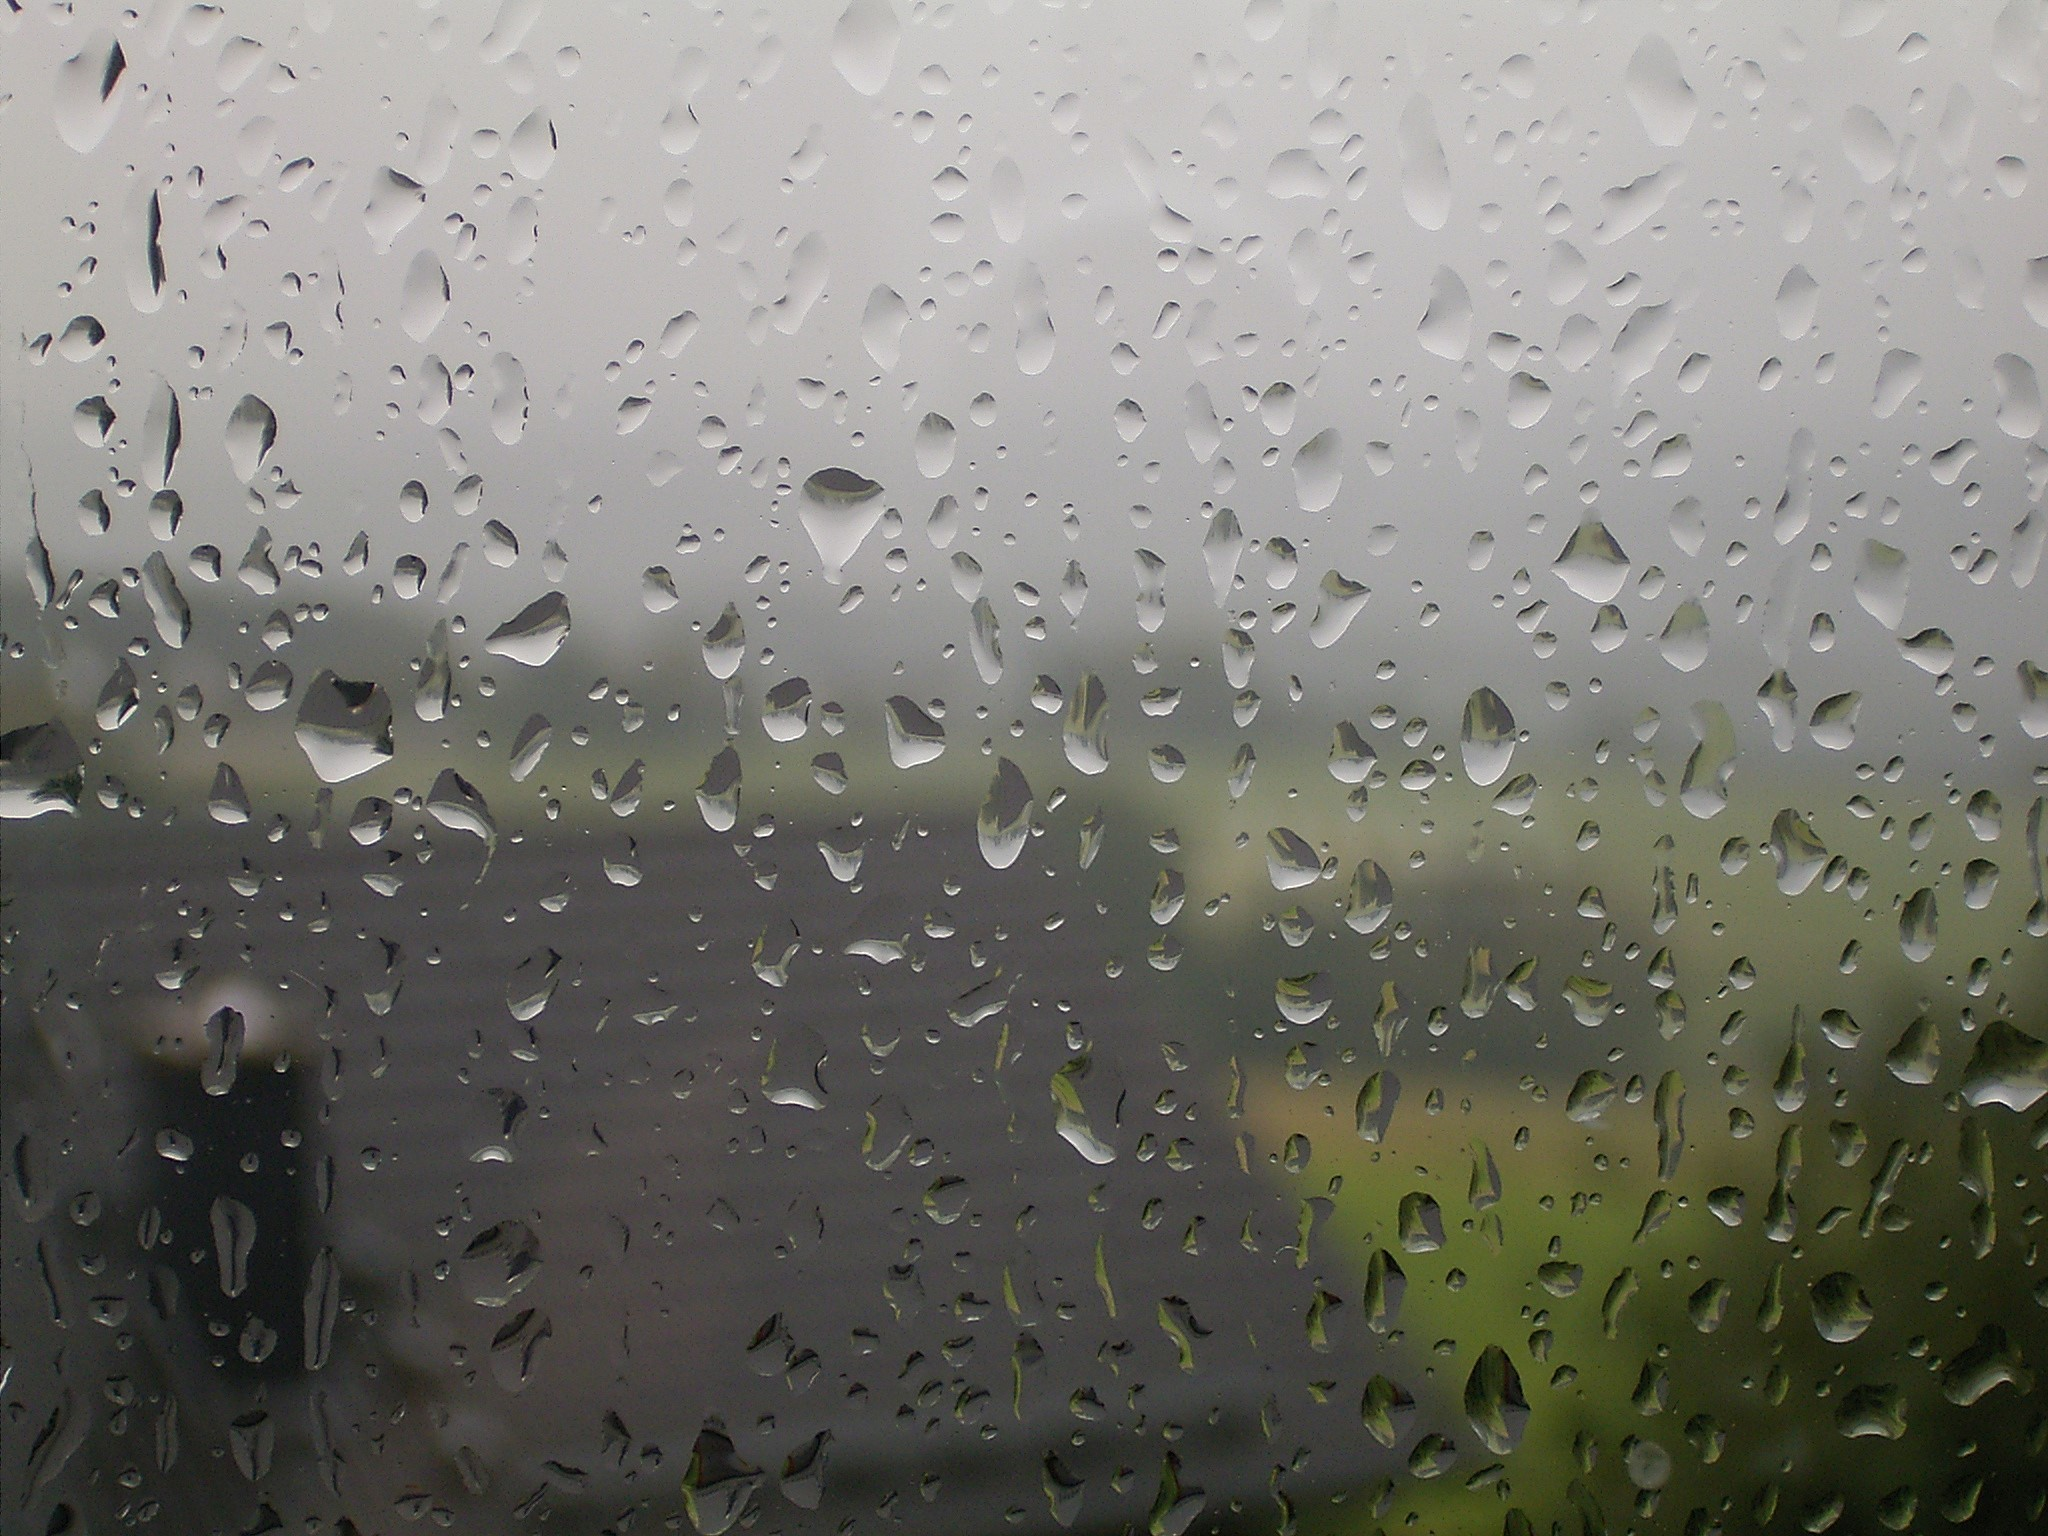 ����� ���� ����� Rain_drops_on_window_02_ies.jpg